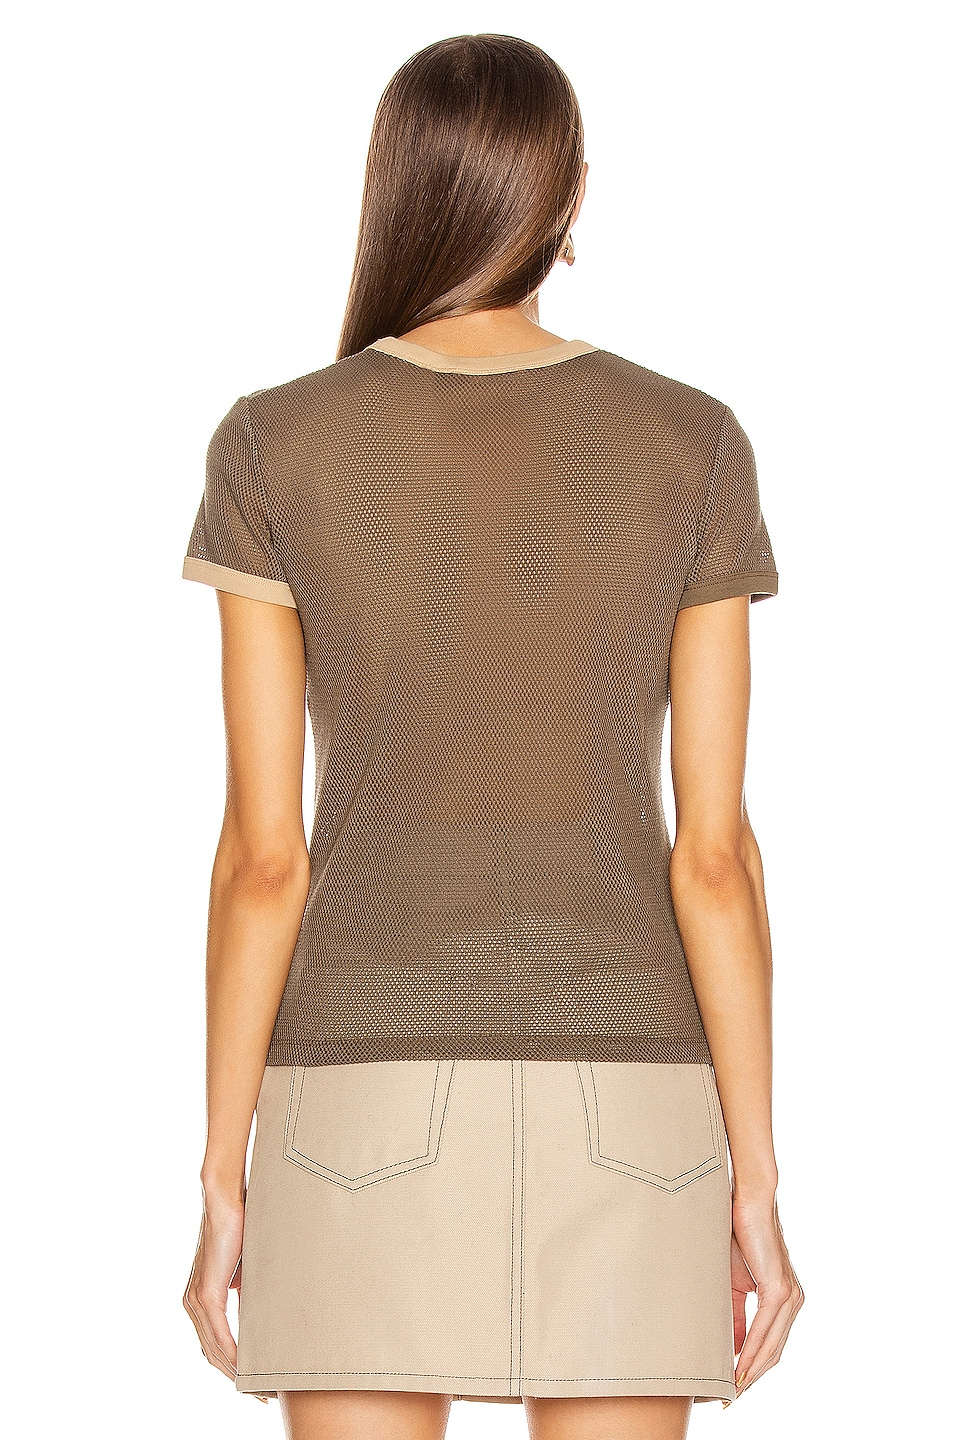 Image 3 of Helmut Lang Mesh Baby Tee in Dark Resin & Camel